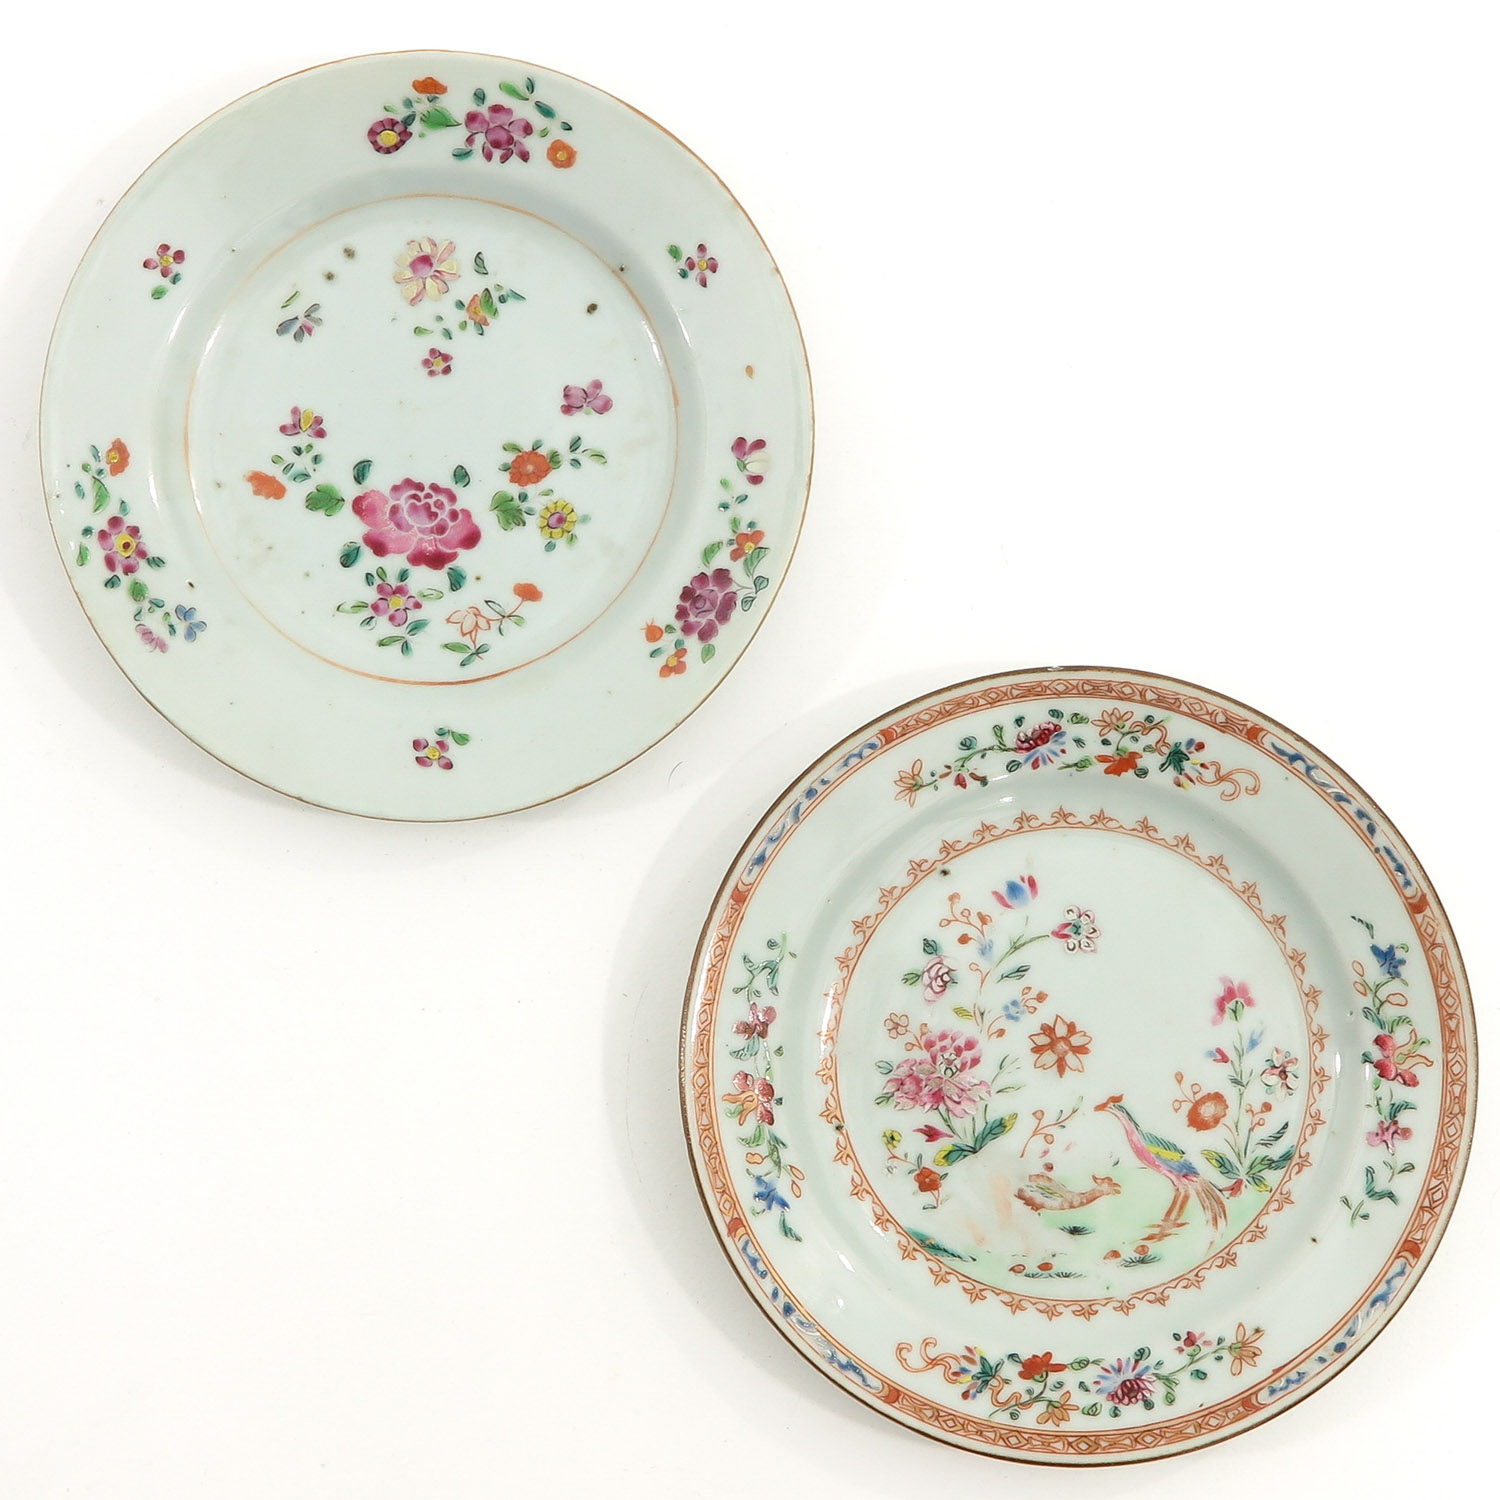 A Series of 4 Famille Rose Plates - Image 5 of 10